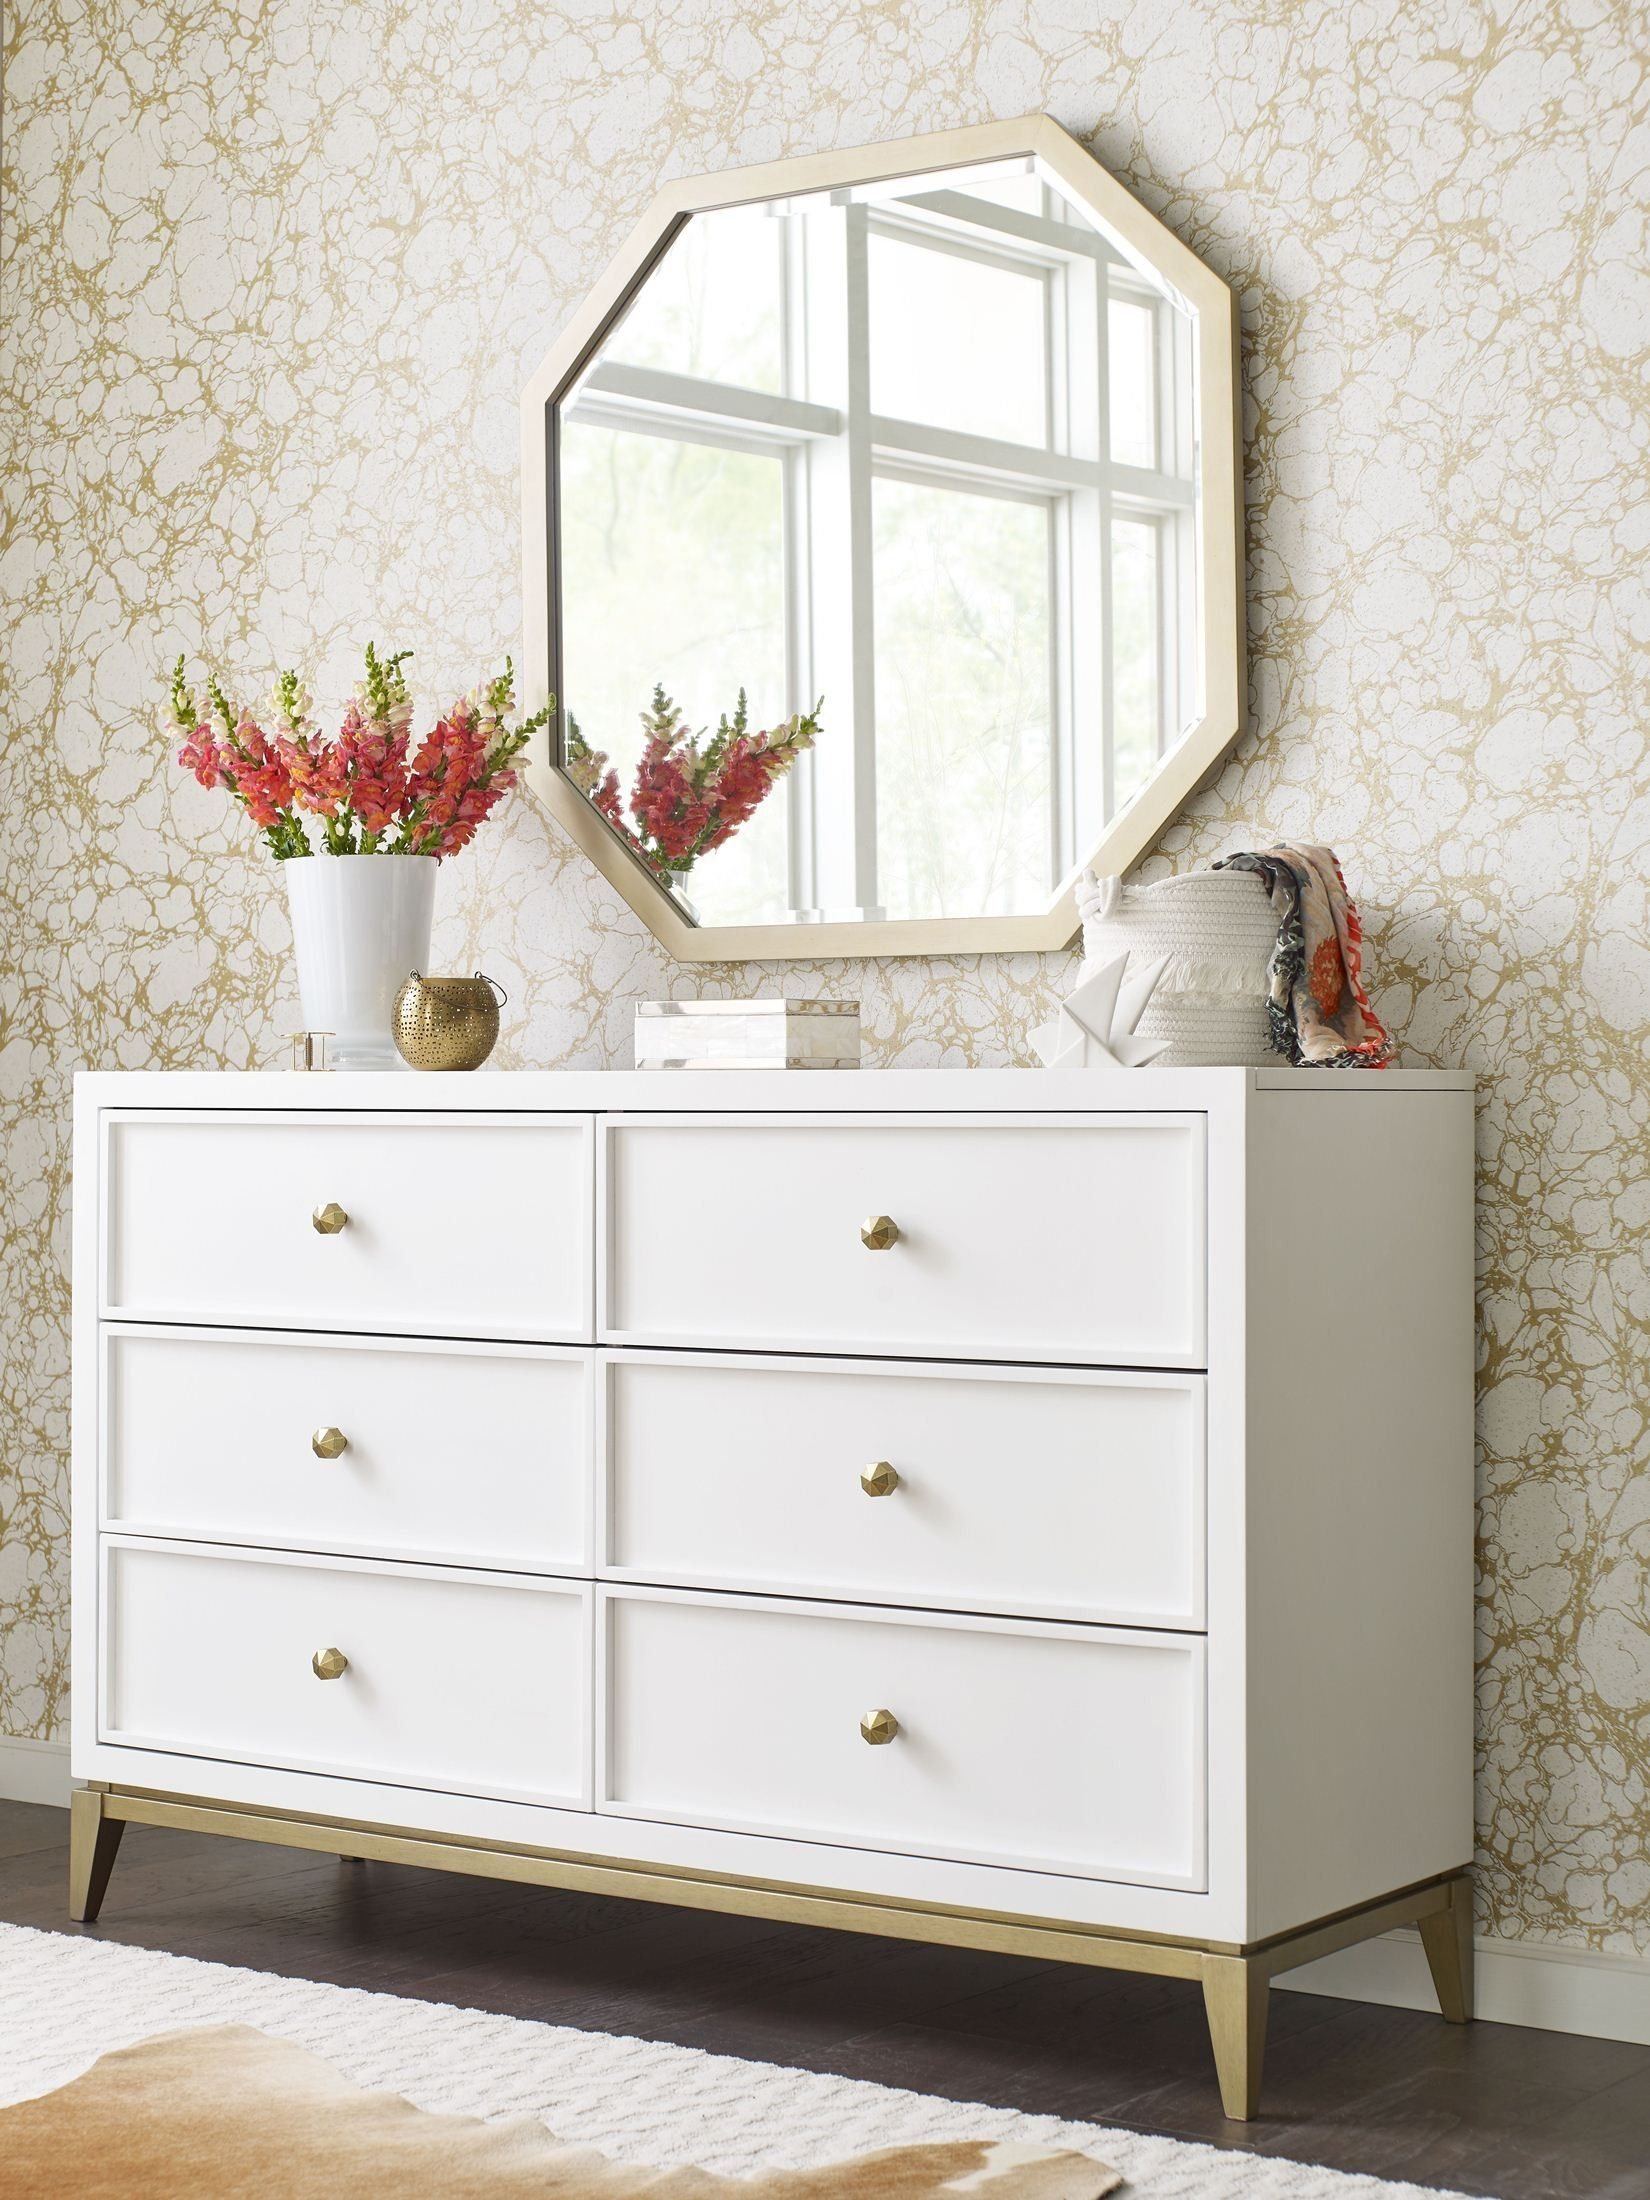 Uptown White And Gold Dresser By Rachael Ray White And Gold